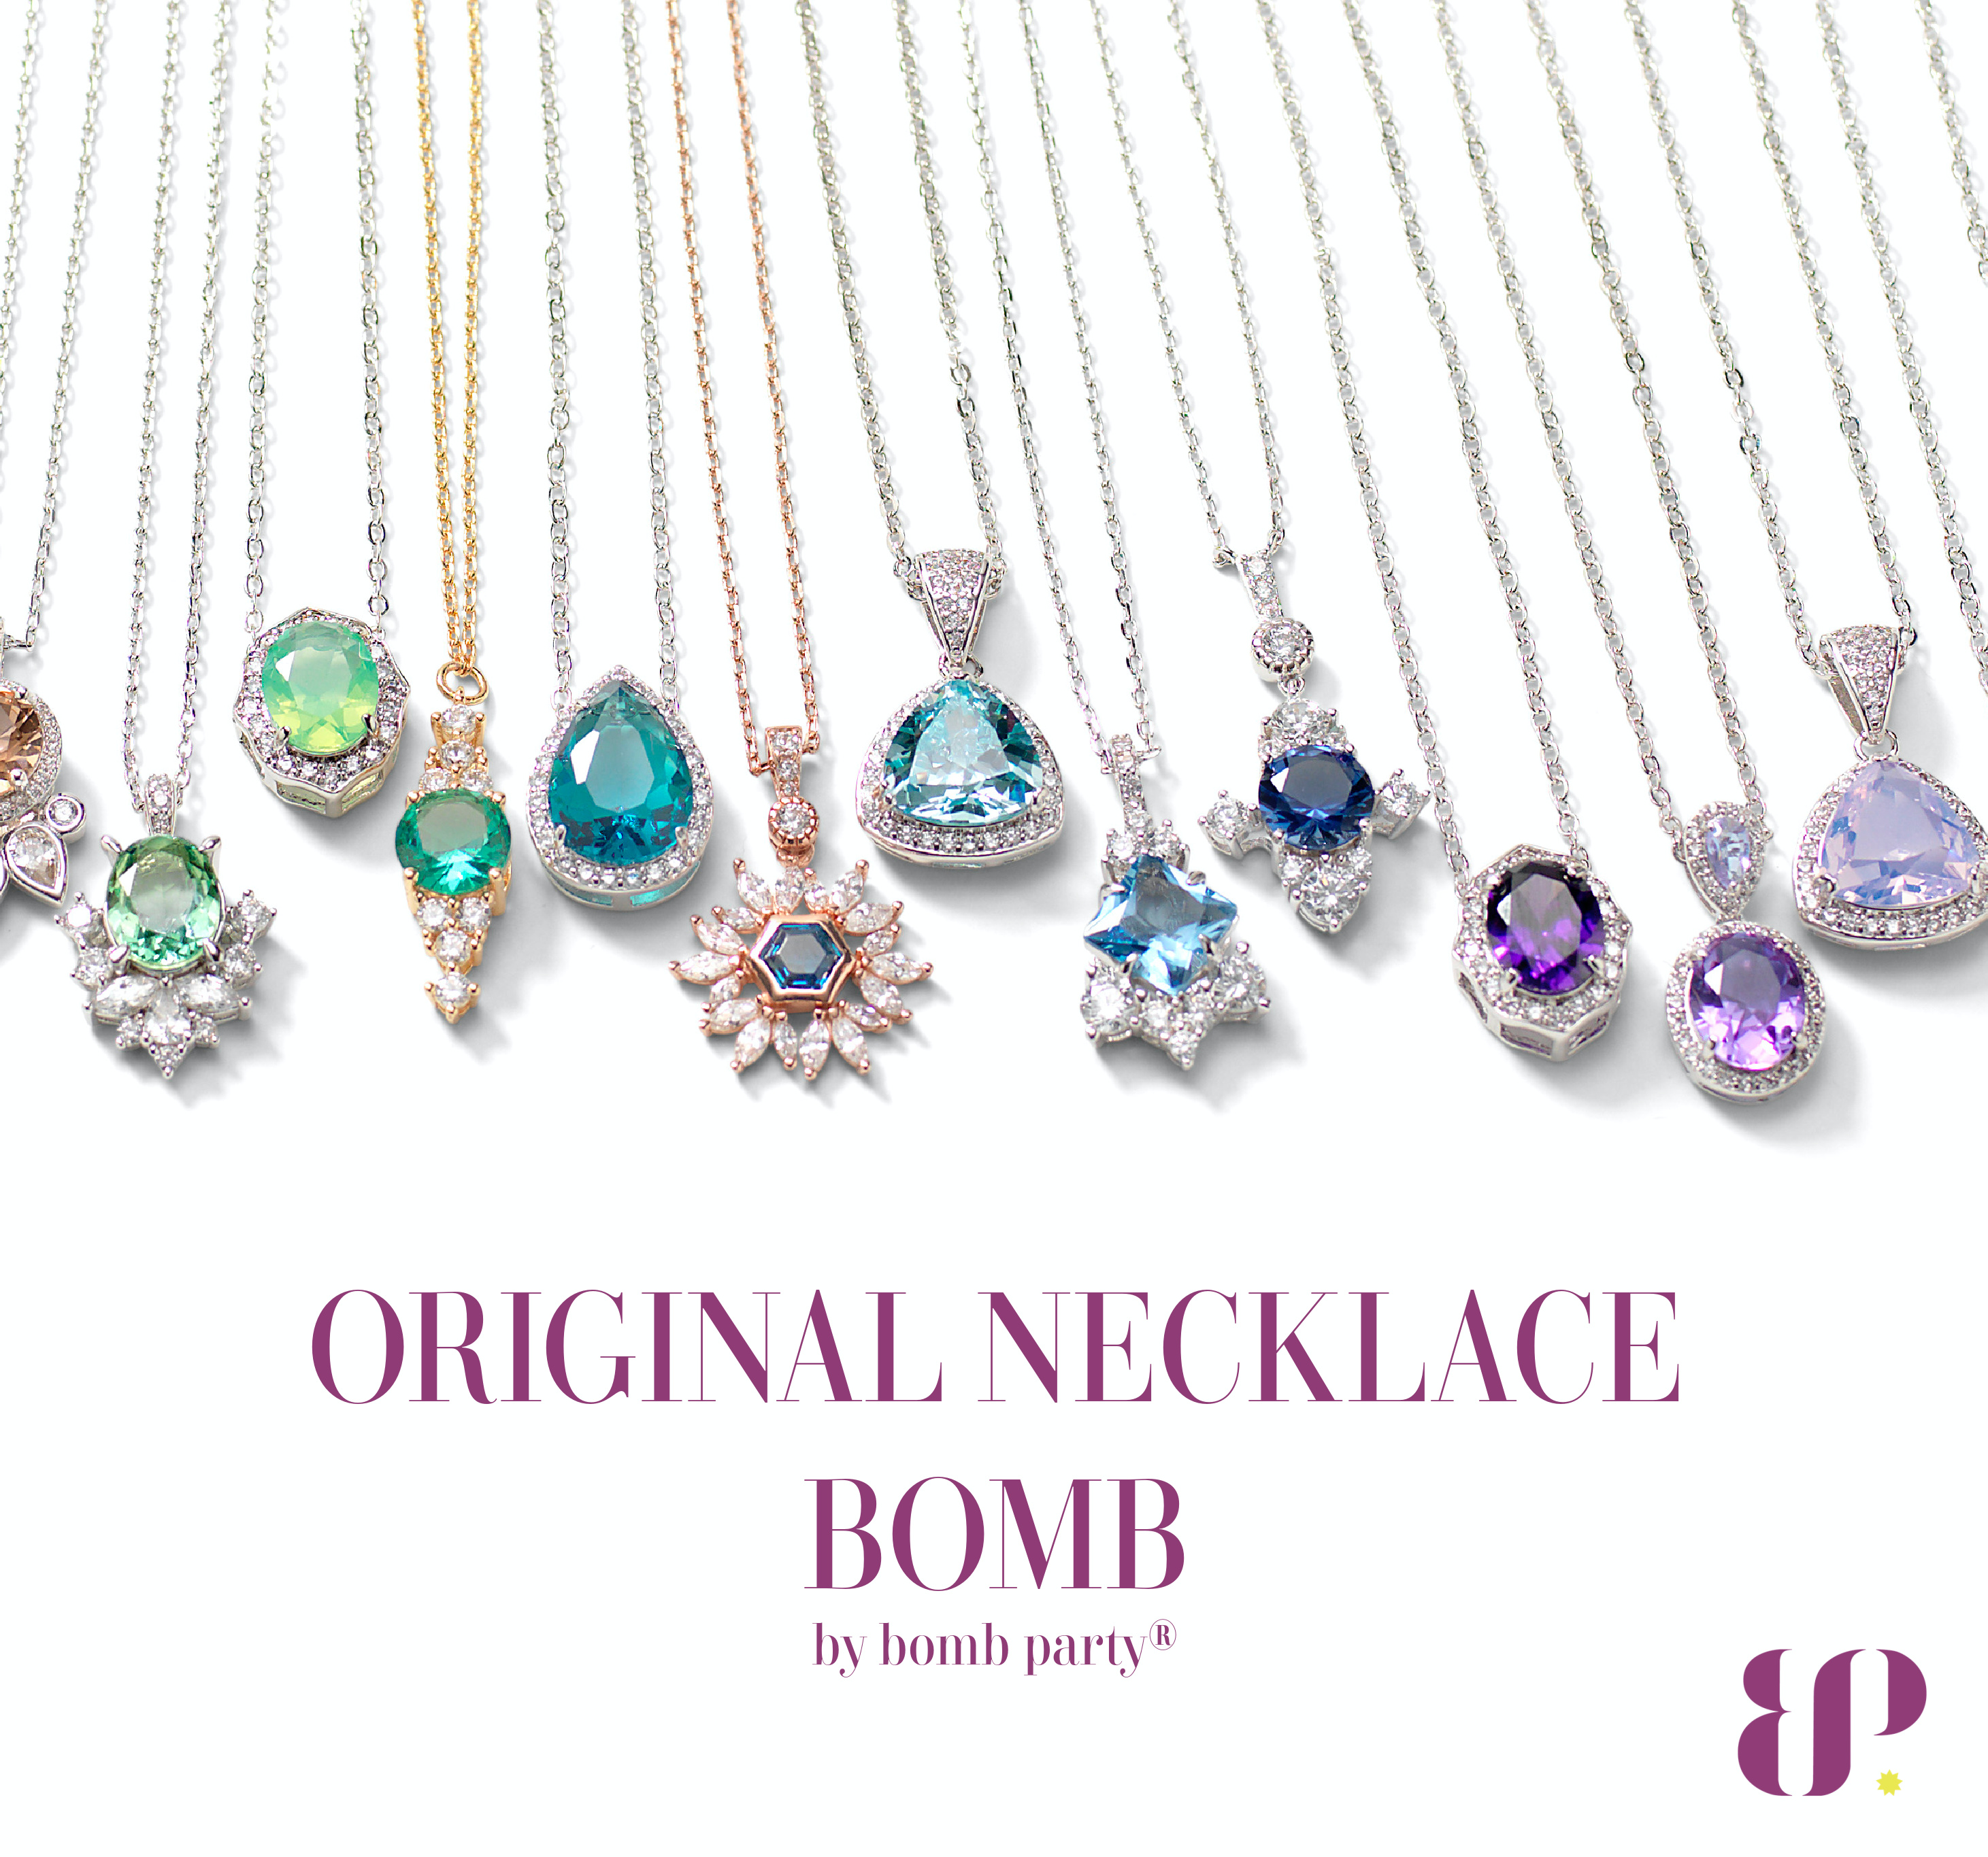 Image for Original Necklace Bomb